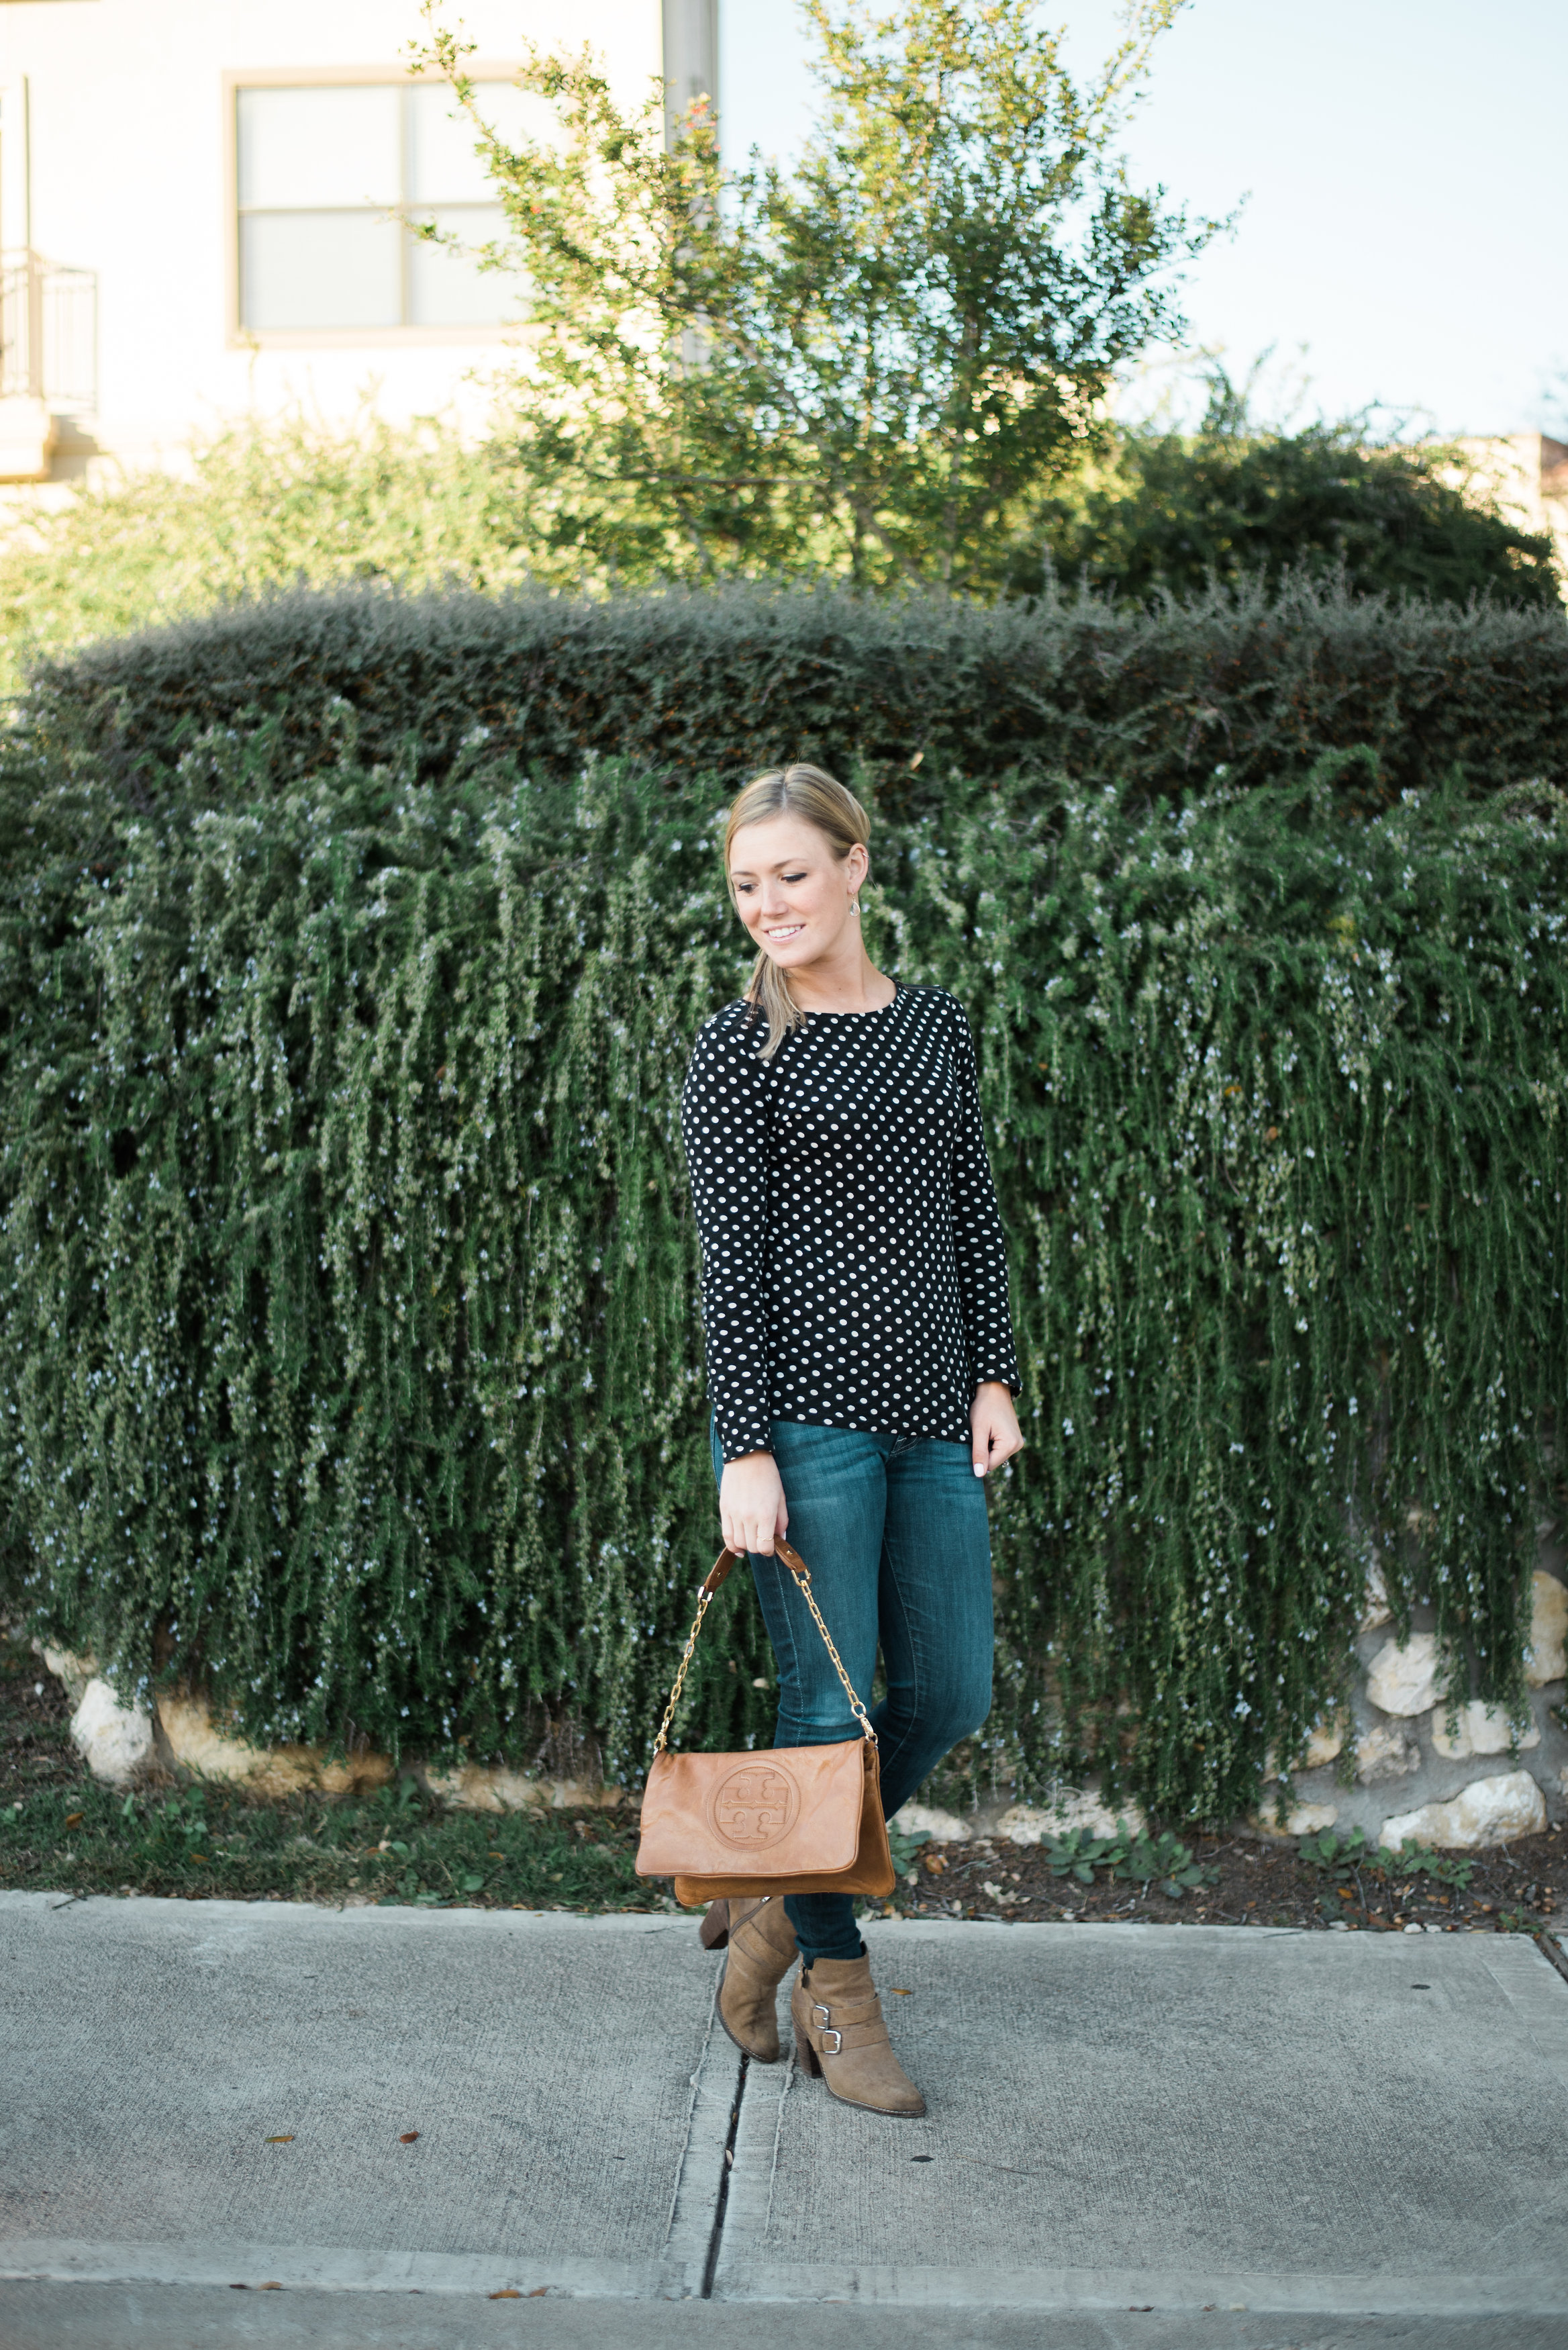 For the Love of Polka Dots – The Autumn Girl